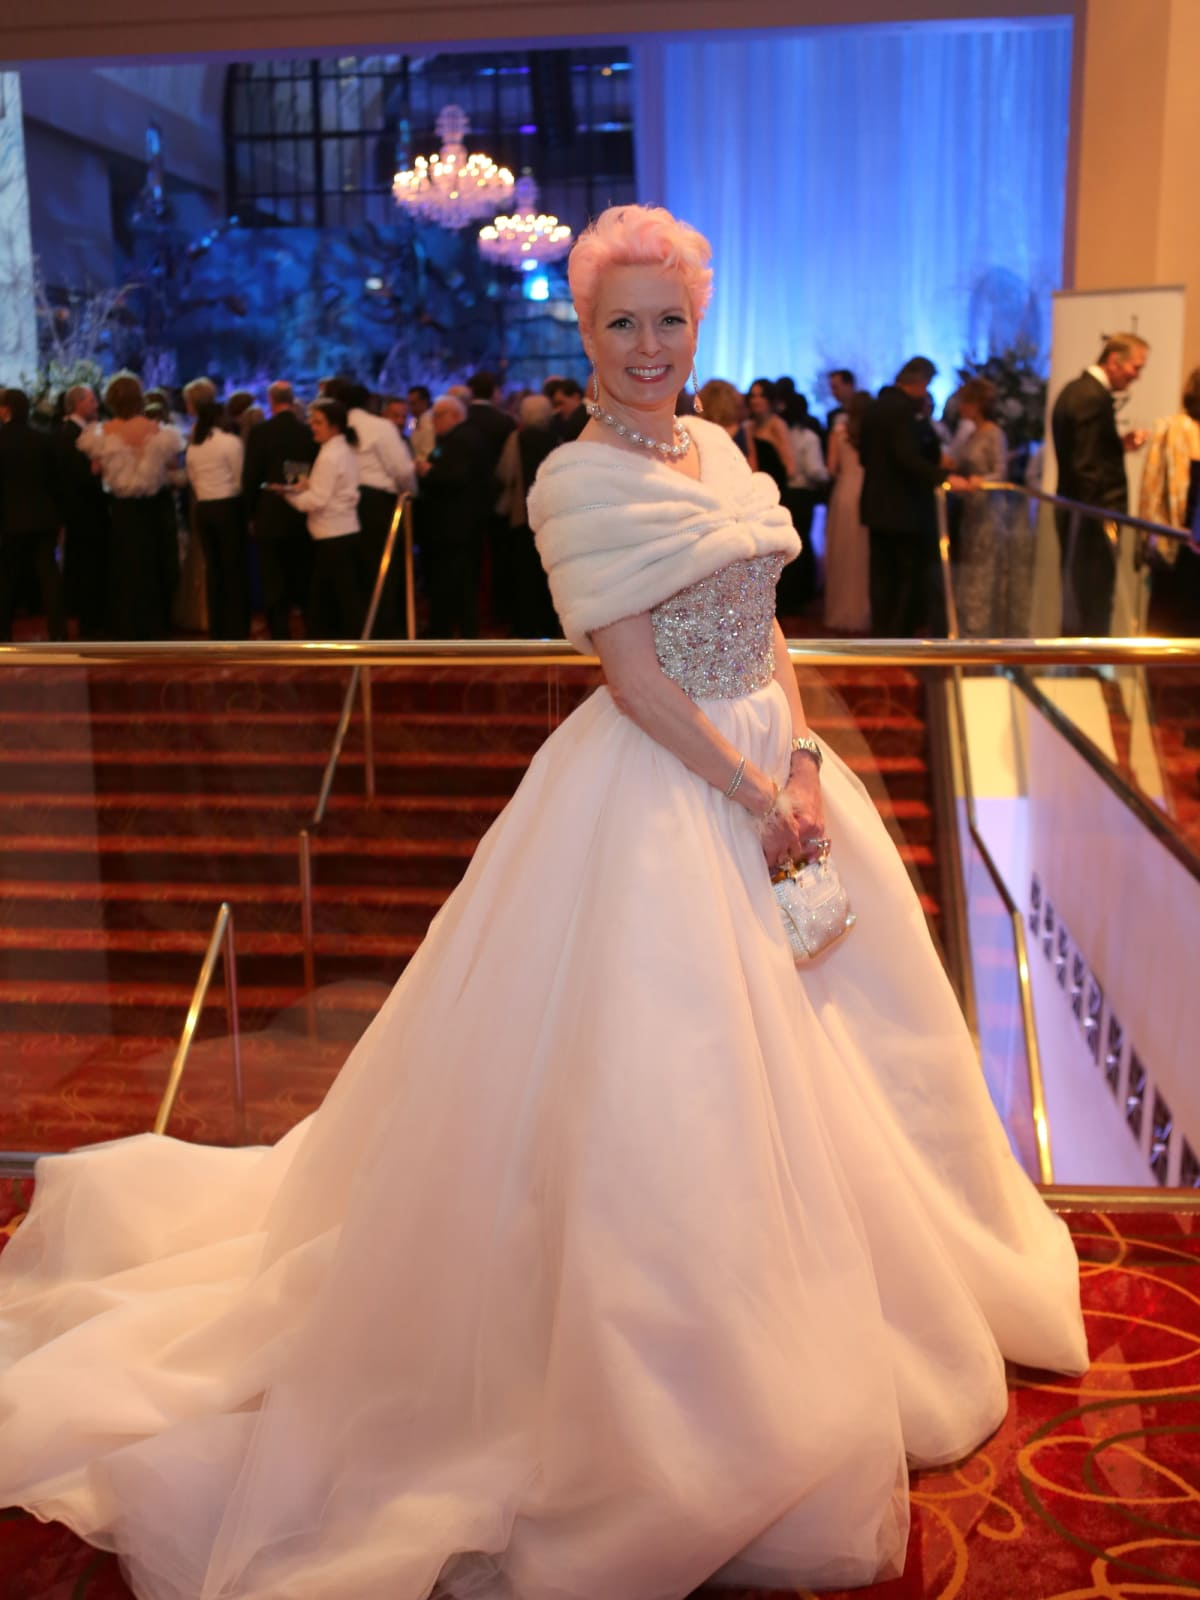 Houston Ballet Ball, Feb. 2016,  Vivian Wise in Stephen Yearick